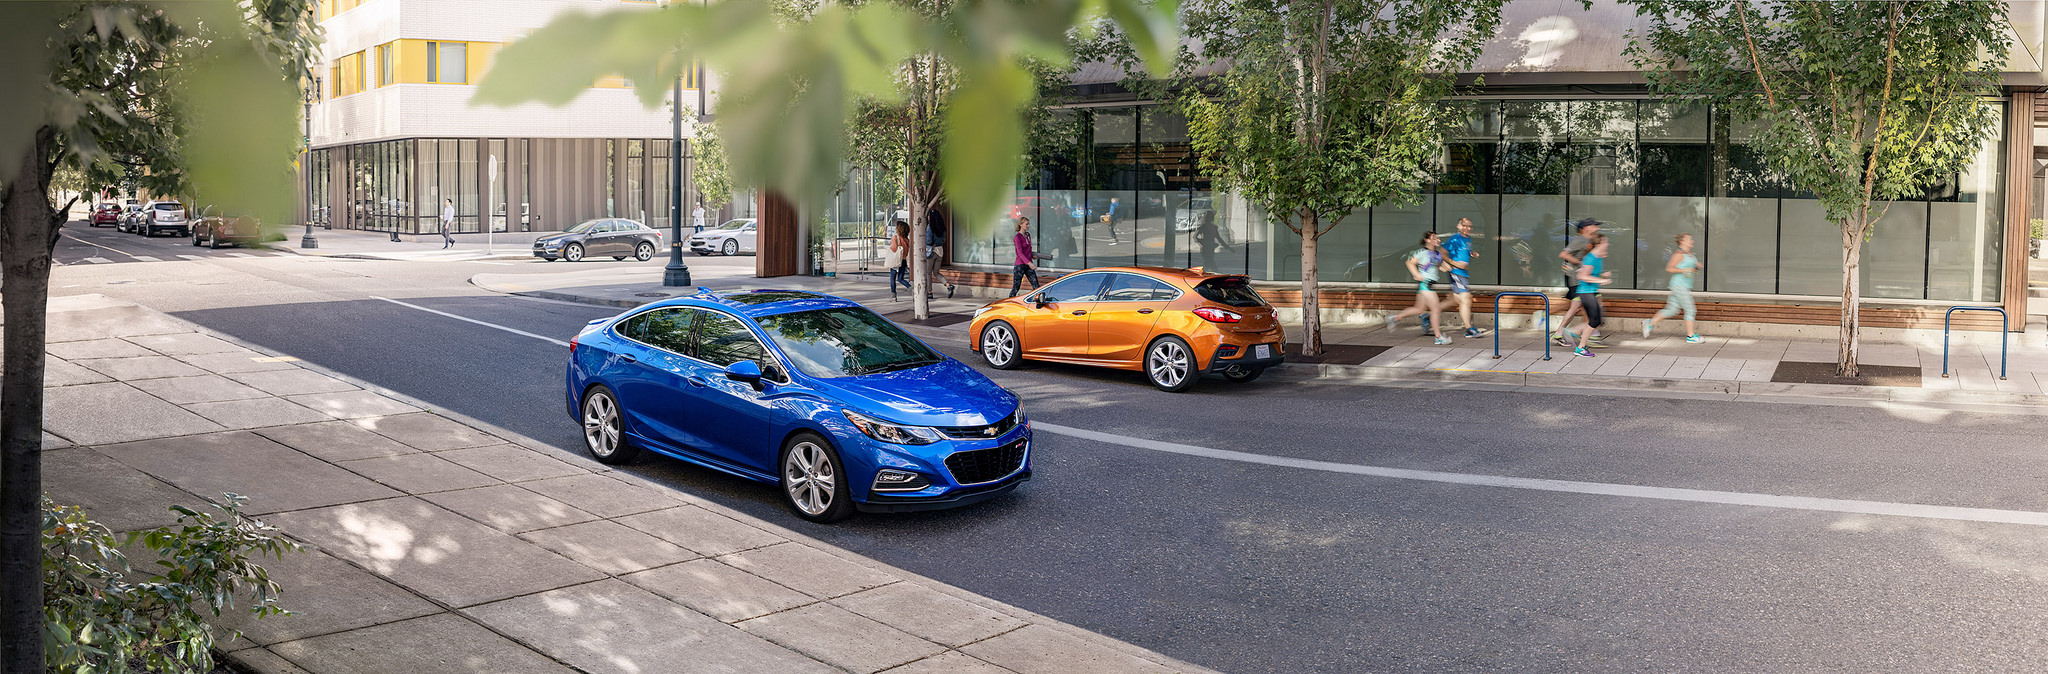 2017 Chevrolet Cruze & Cruze Hatch